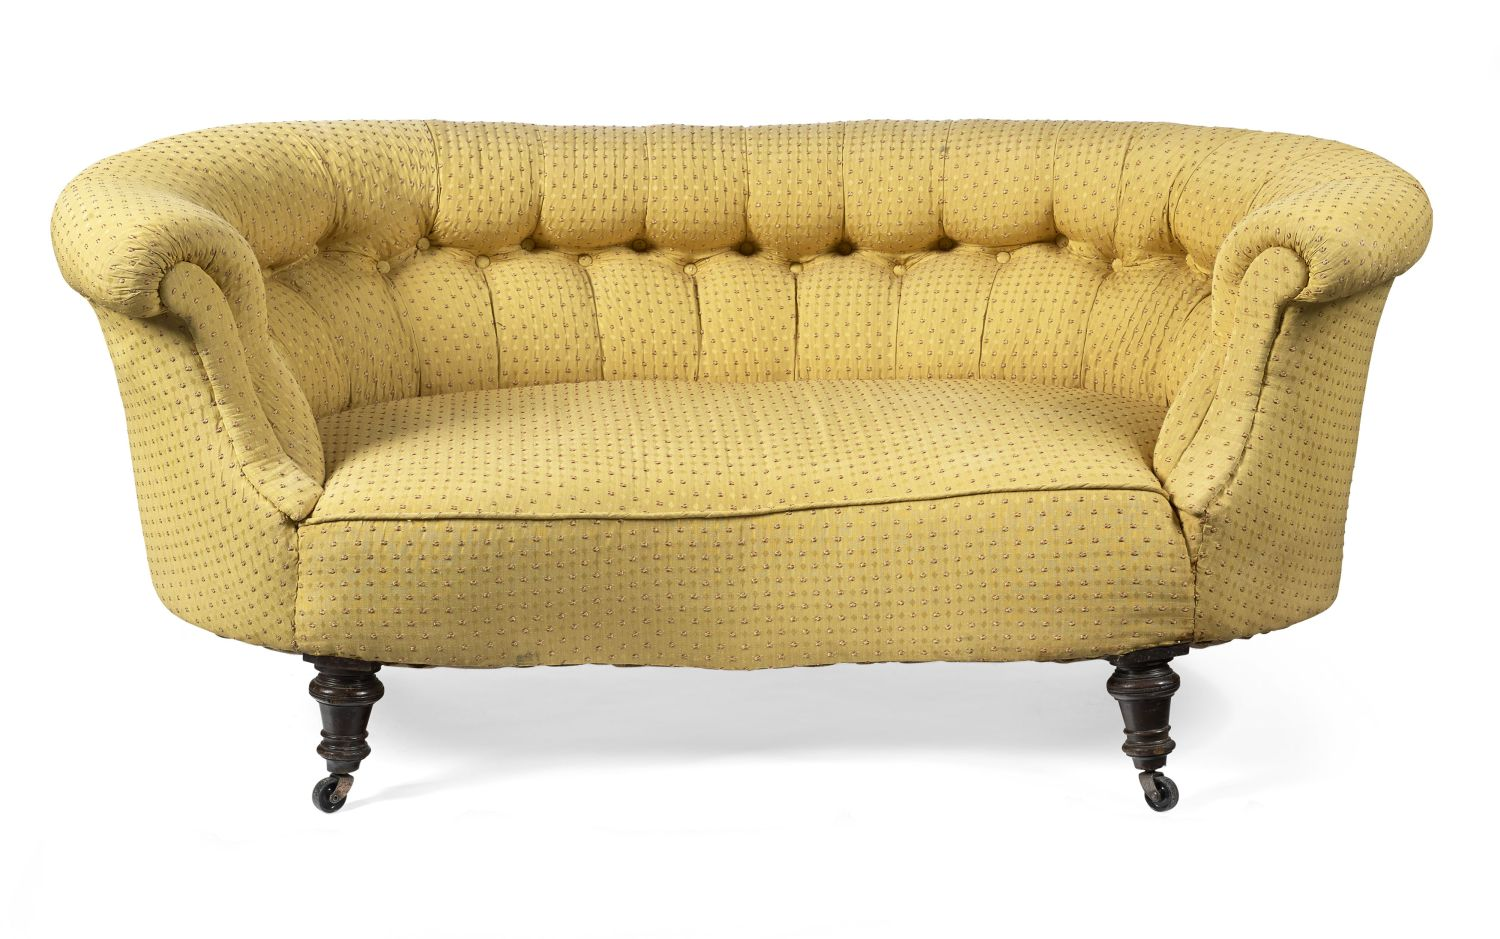 VICTORIAN BUTTON UPHOLSTERED SMALL SOFA LATE 19TH CENTURY